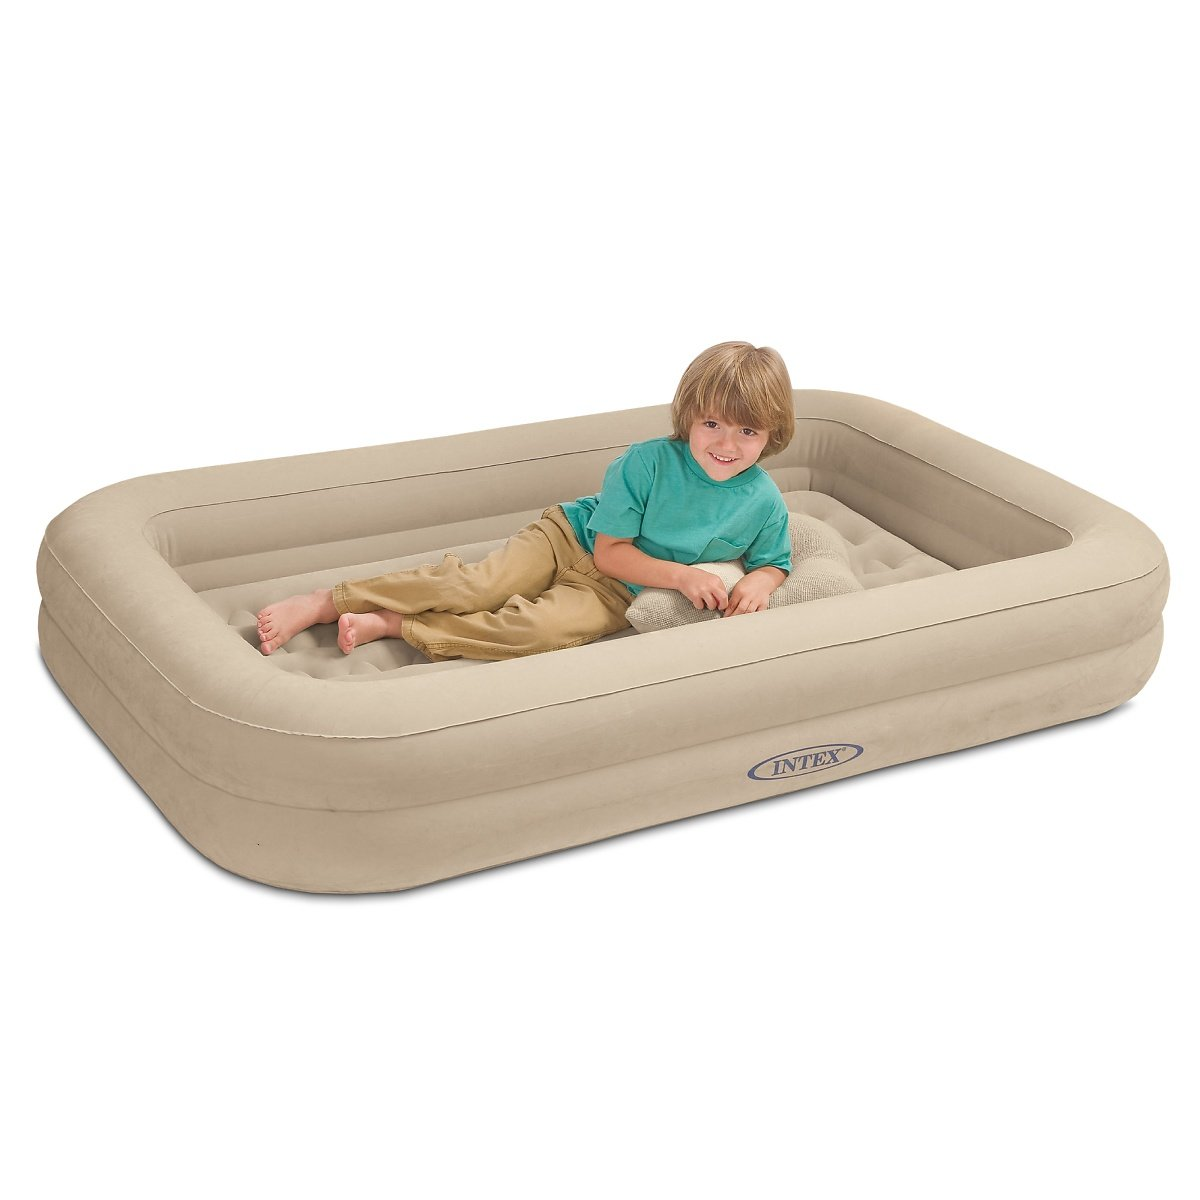 Intex Kidz Portable Travel Bed